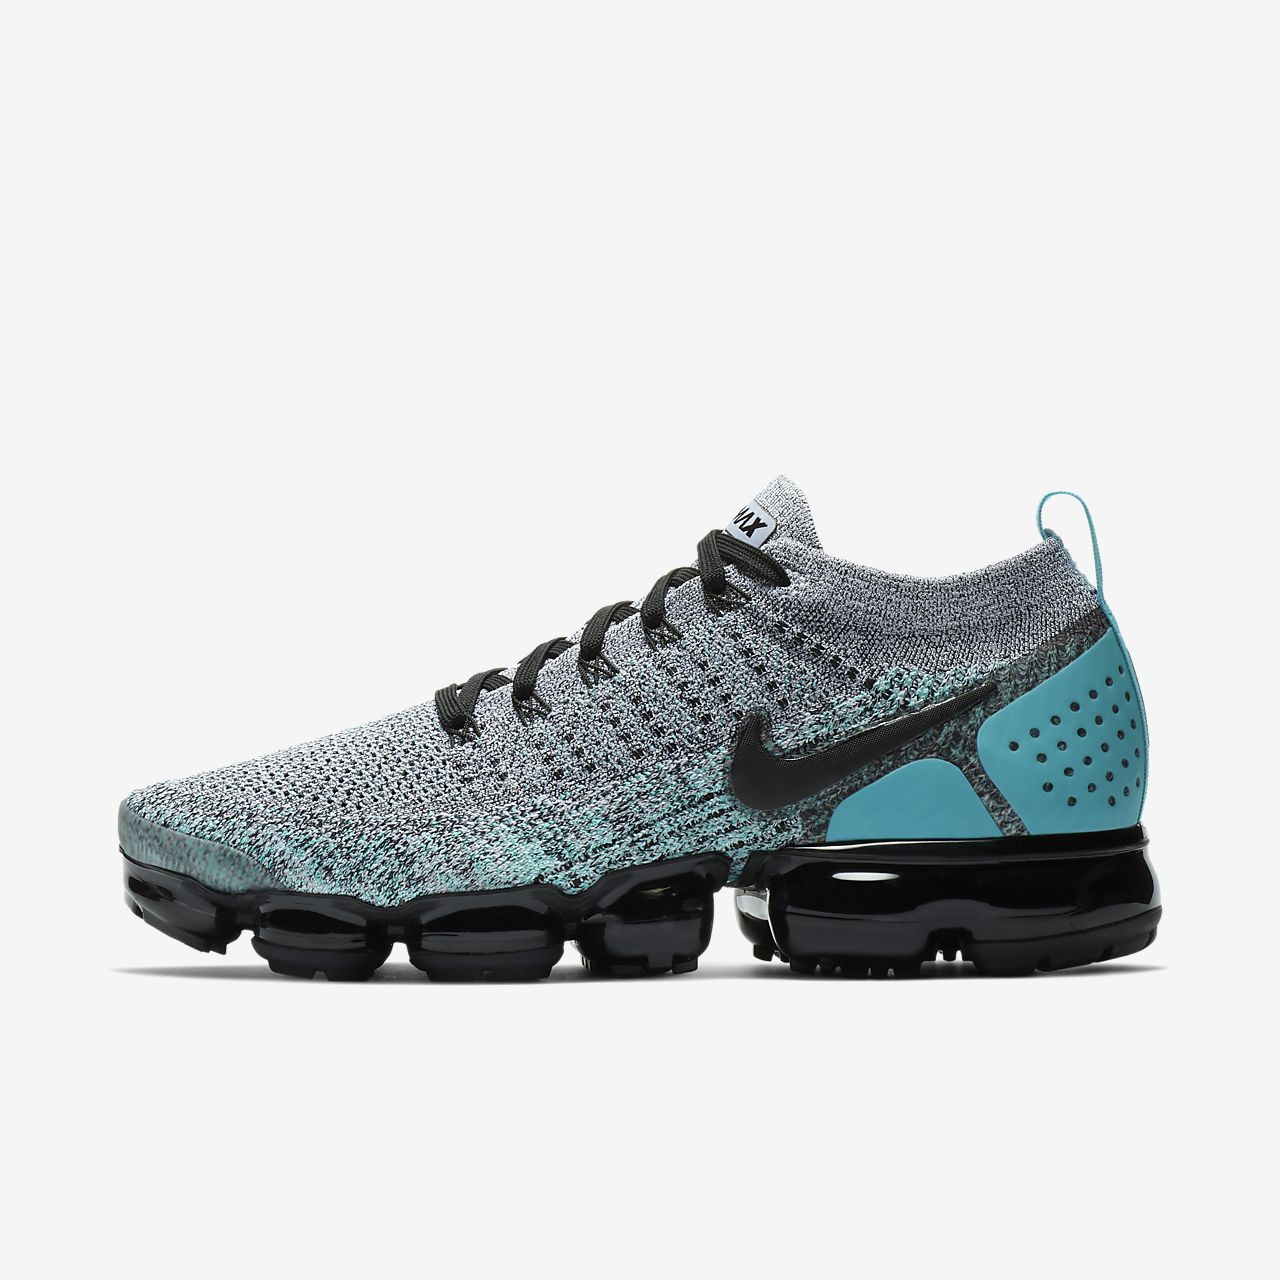 Nike Air Vapormax Flyknit 2 [942842-104] Men Running Shoes White/Dusty Cactus